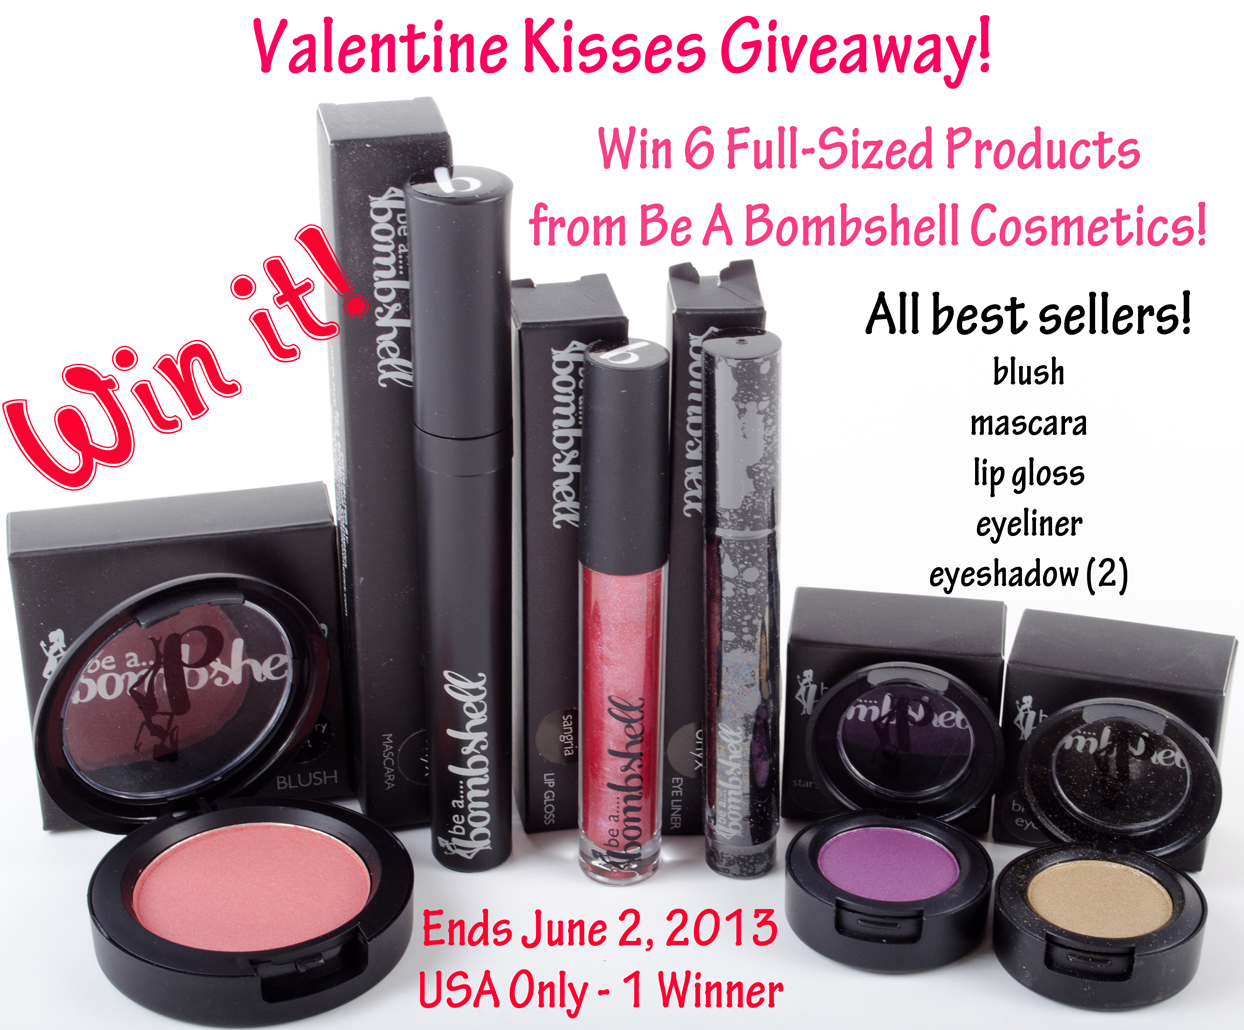 Be A Bombshell Cosmetics Giveaway!